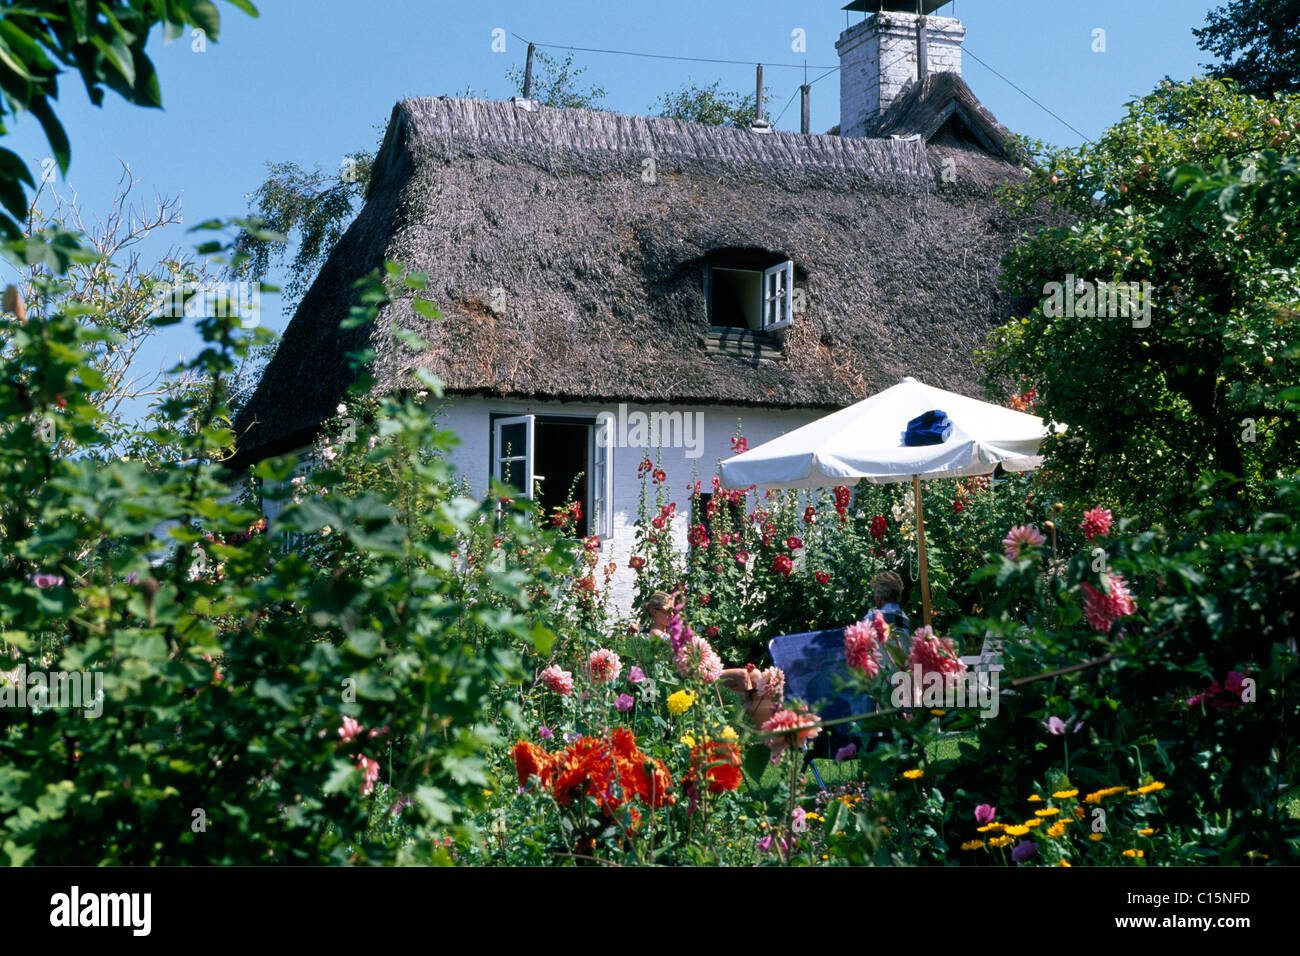 Thatched, thatch-roof house, Sieseby, Schlei, Schleswig-Holstein, Germany, Europe - Stock Image